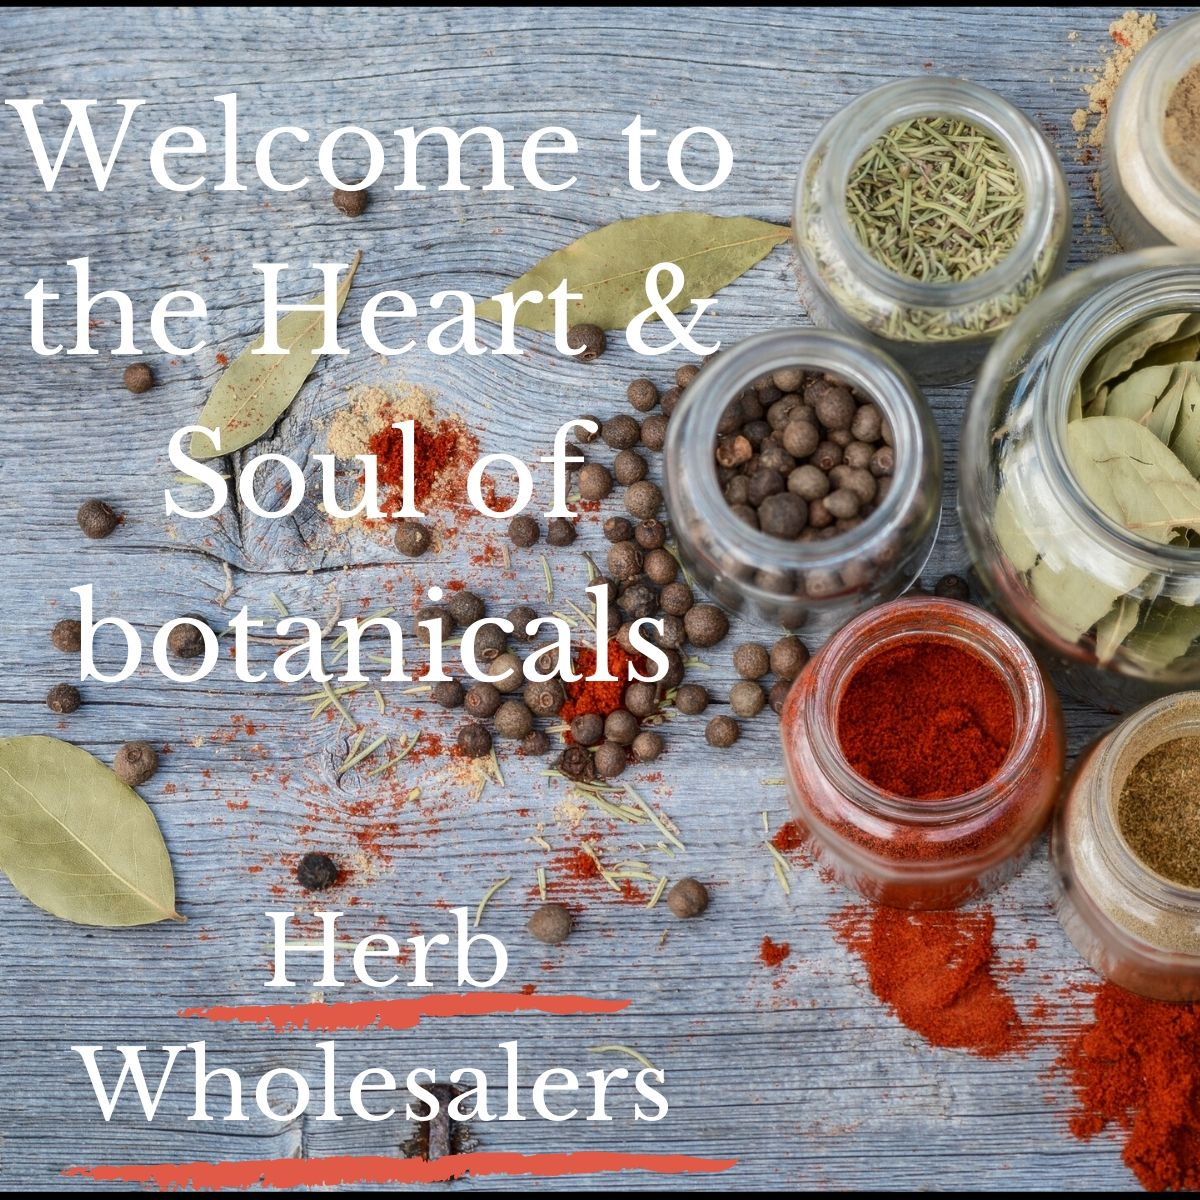 Heart & Soul of Botanicals